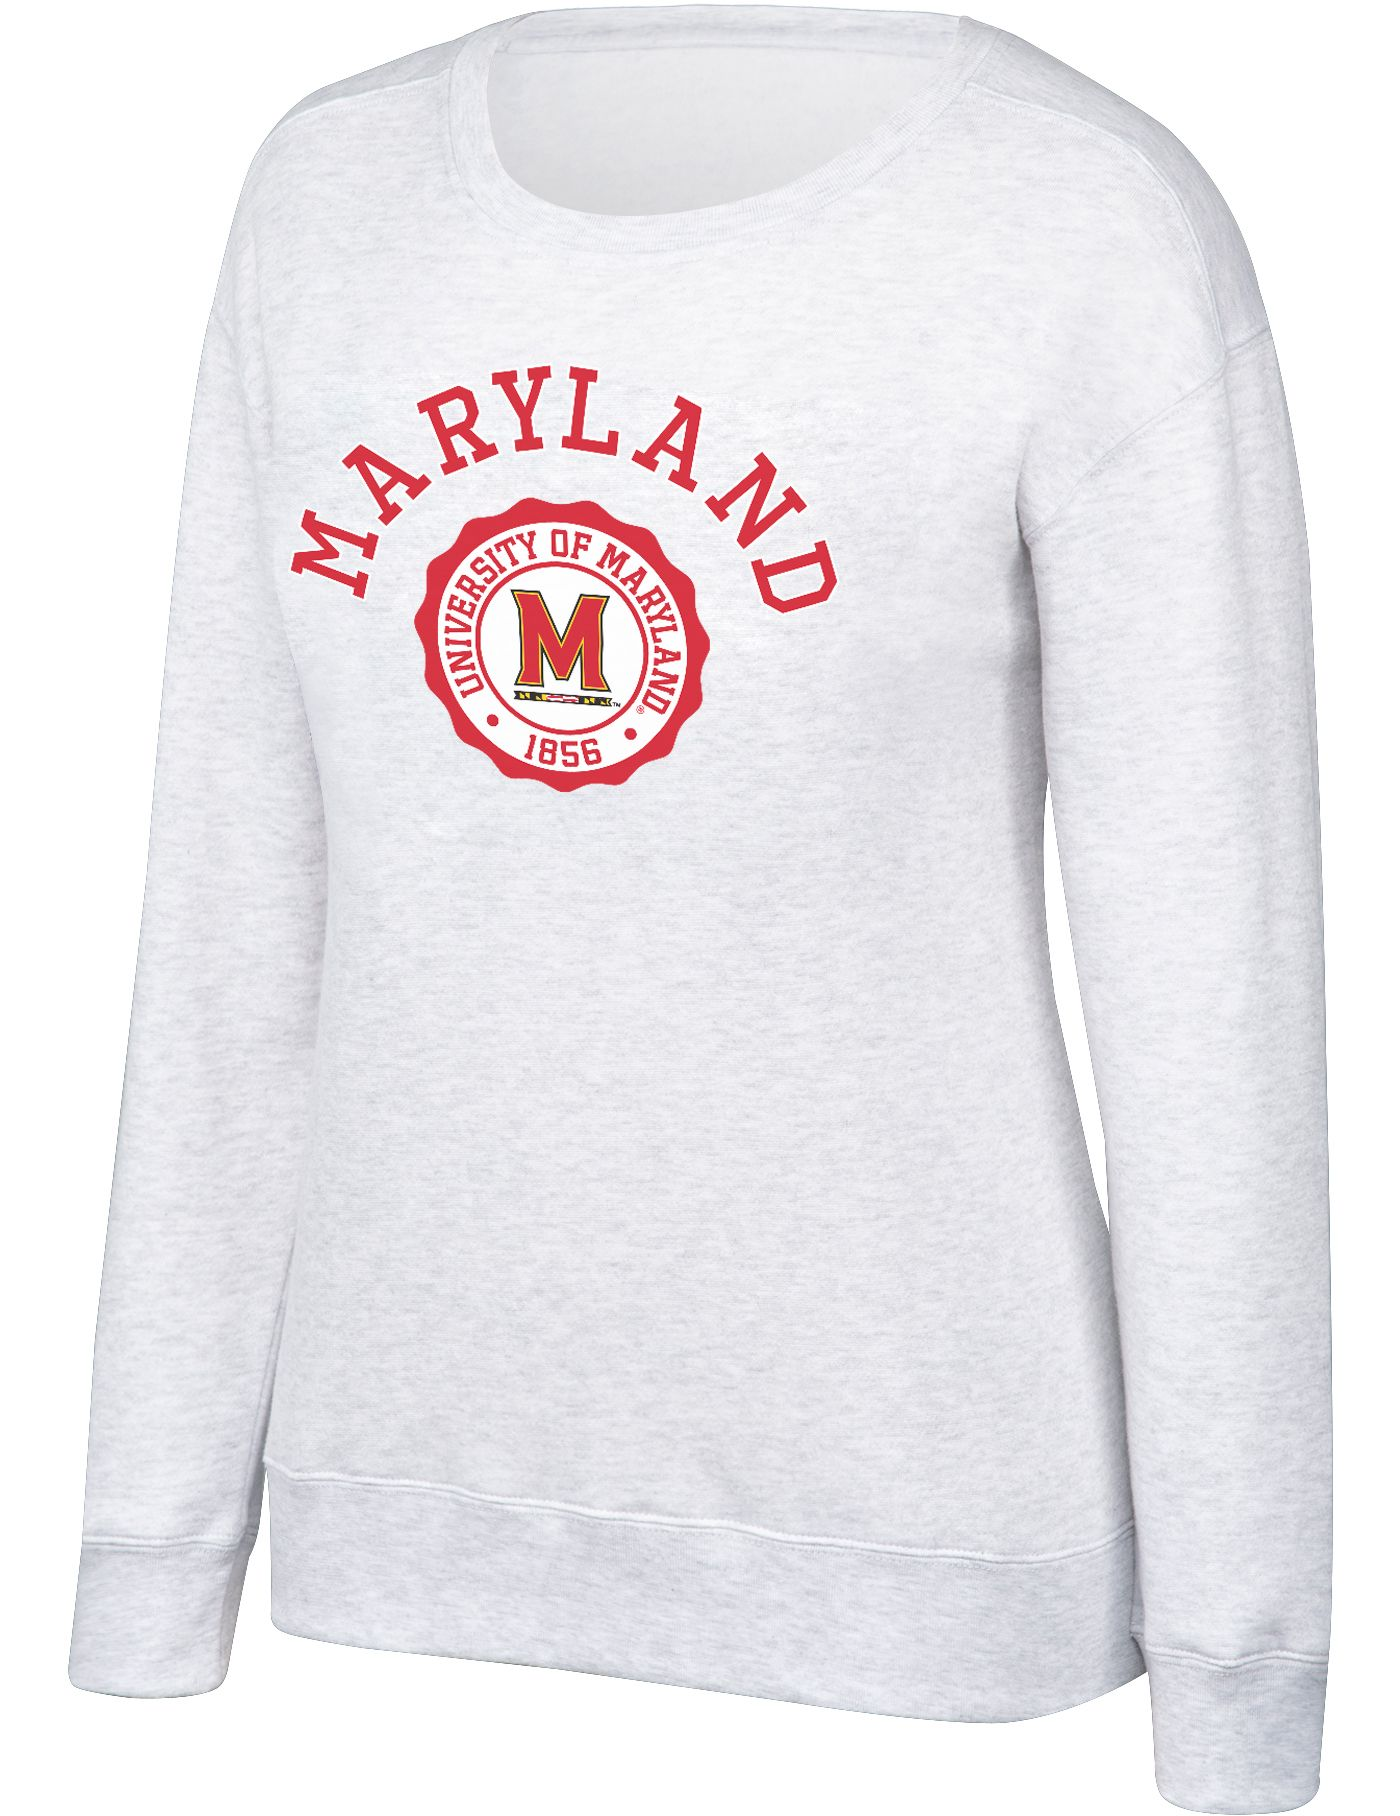 Top of the World Women's Maryland Terrapins Grey Essential Crew Neck Sweatshirt